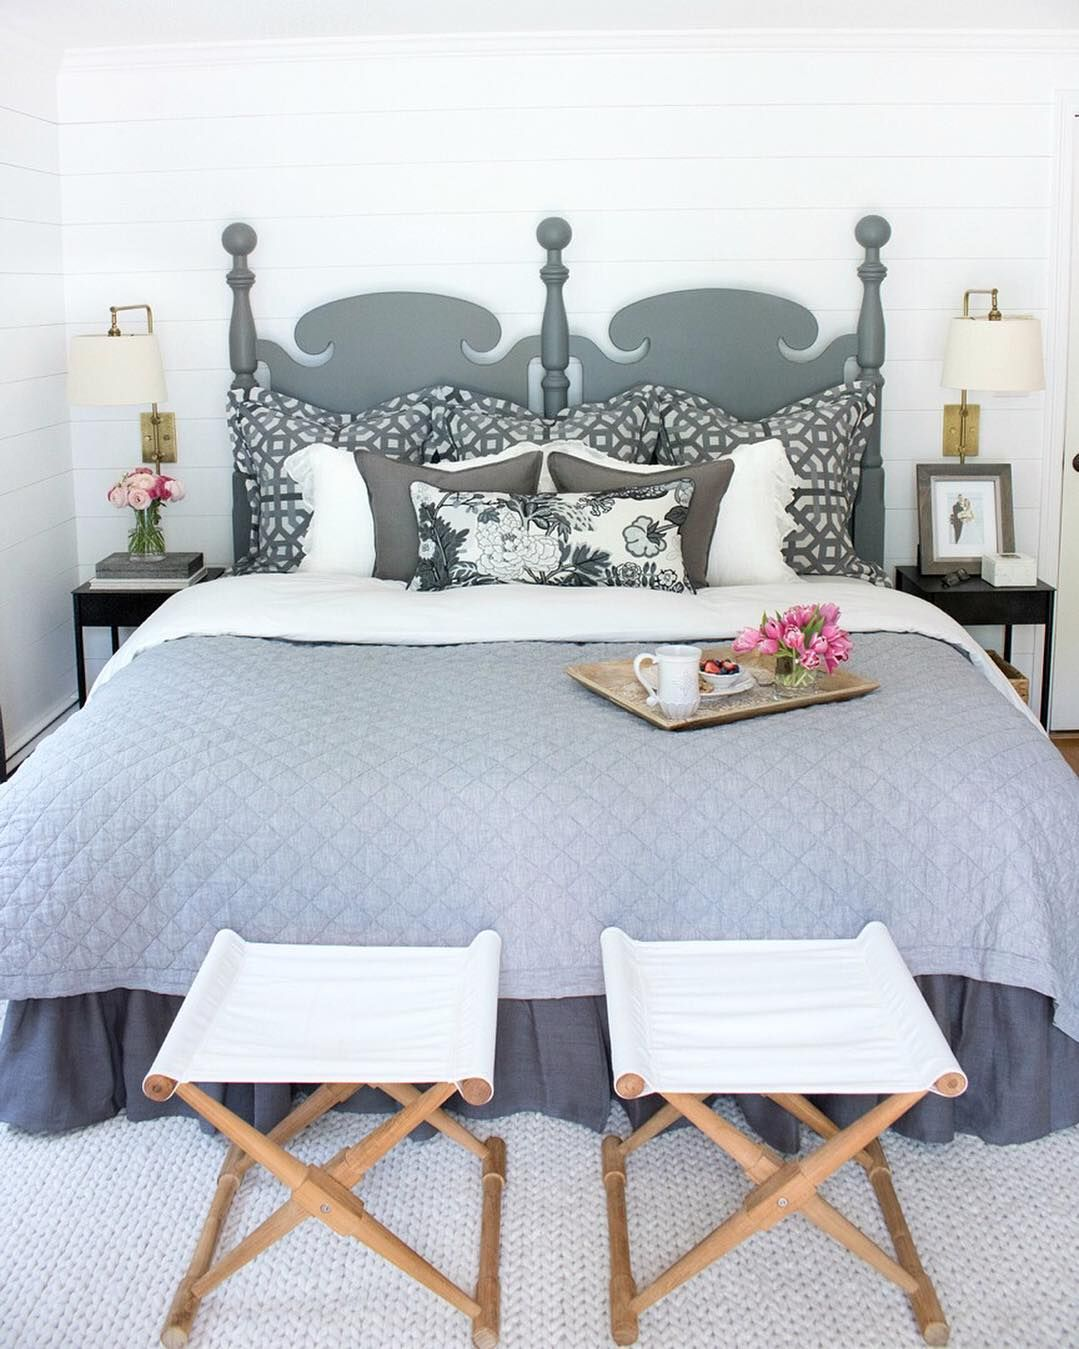 27 Gorgeous Bedrooms Thatu0027ll Inspire You to